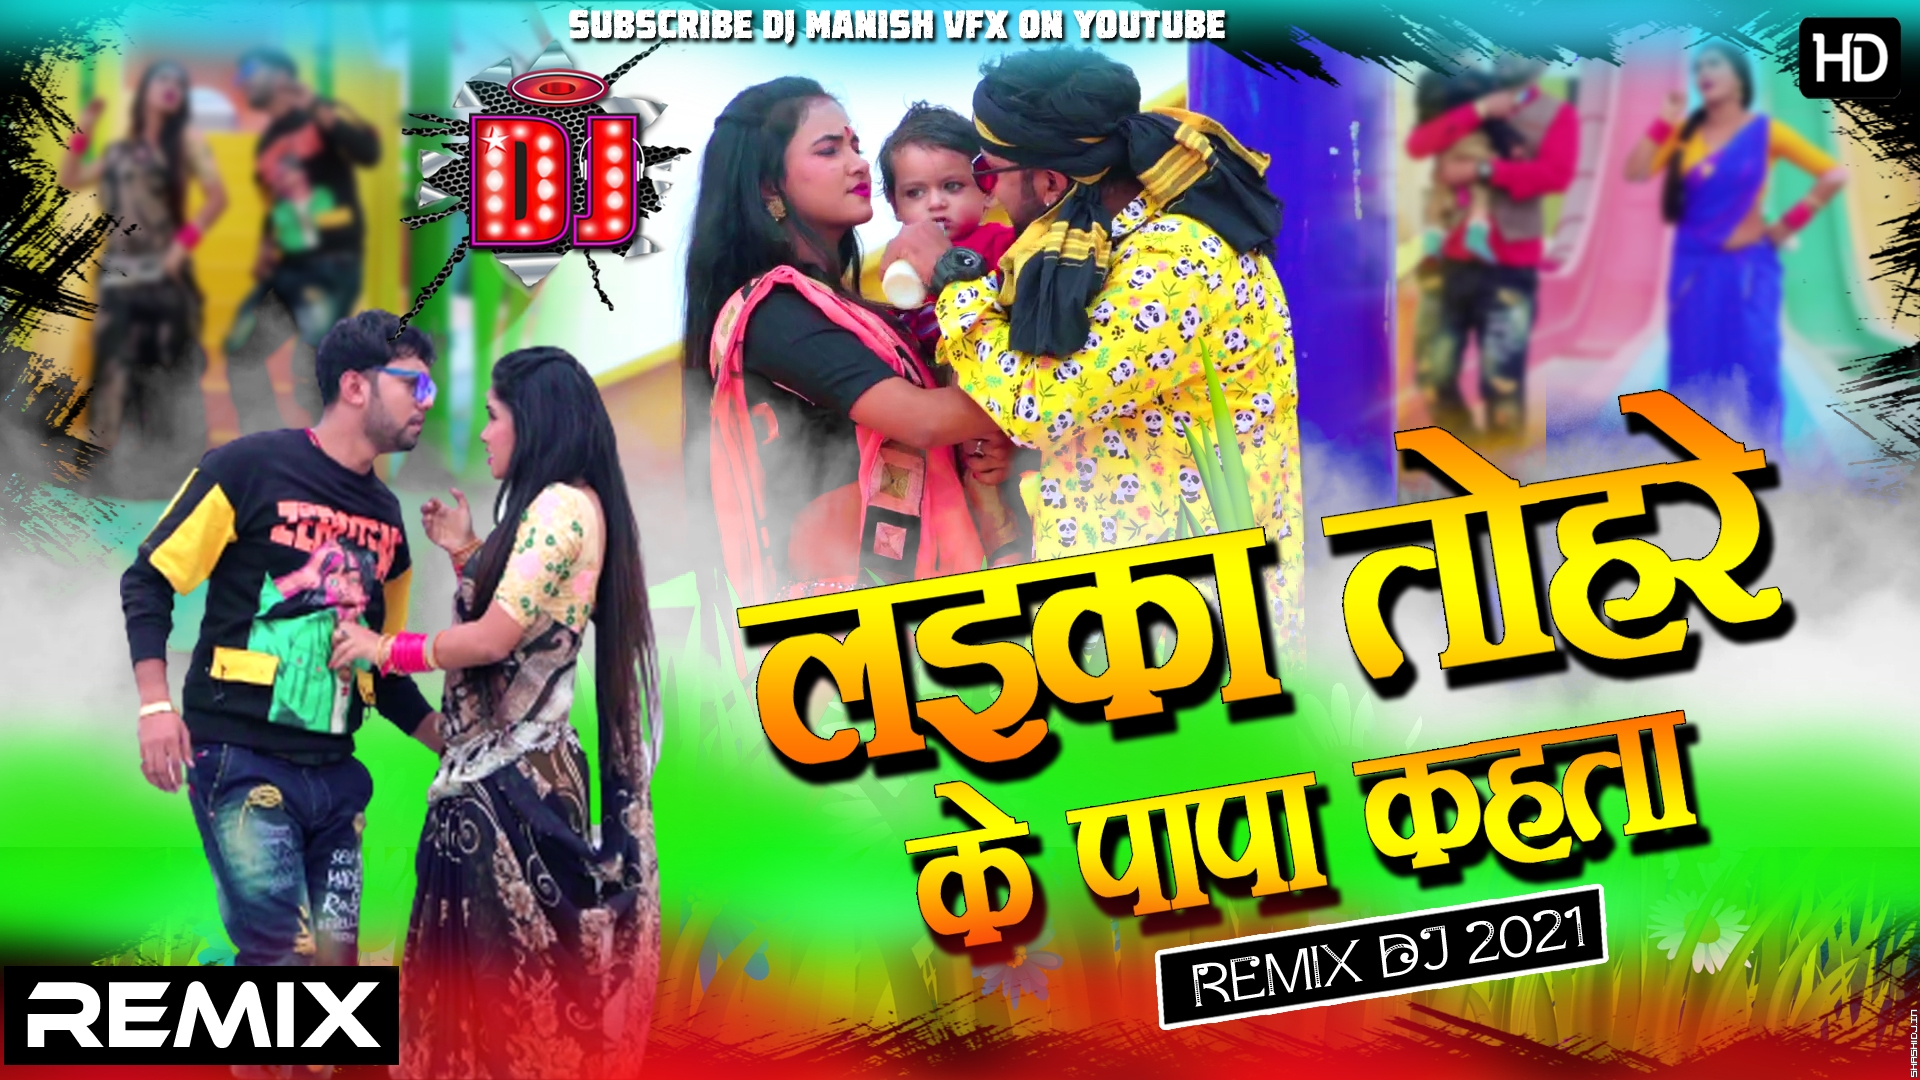 Laika Tohre Ke Papa Kahta - Comedy Dance Mix 2021 Mix By Dj Manish Dhanbad.mp3